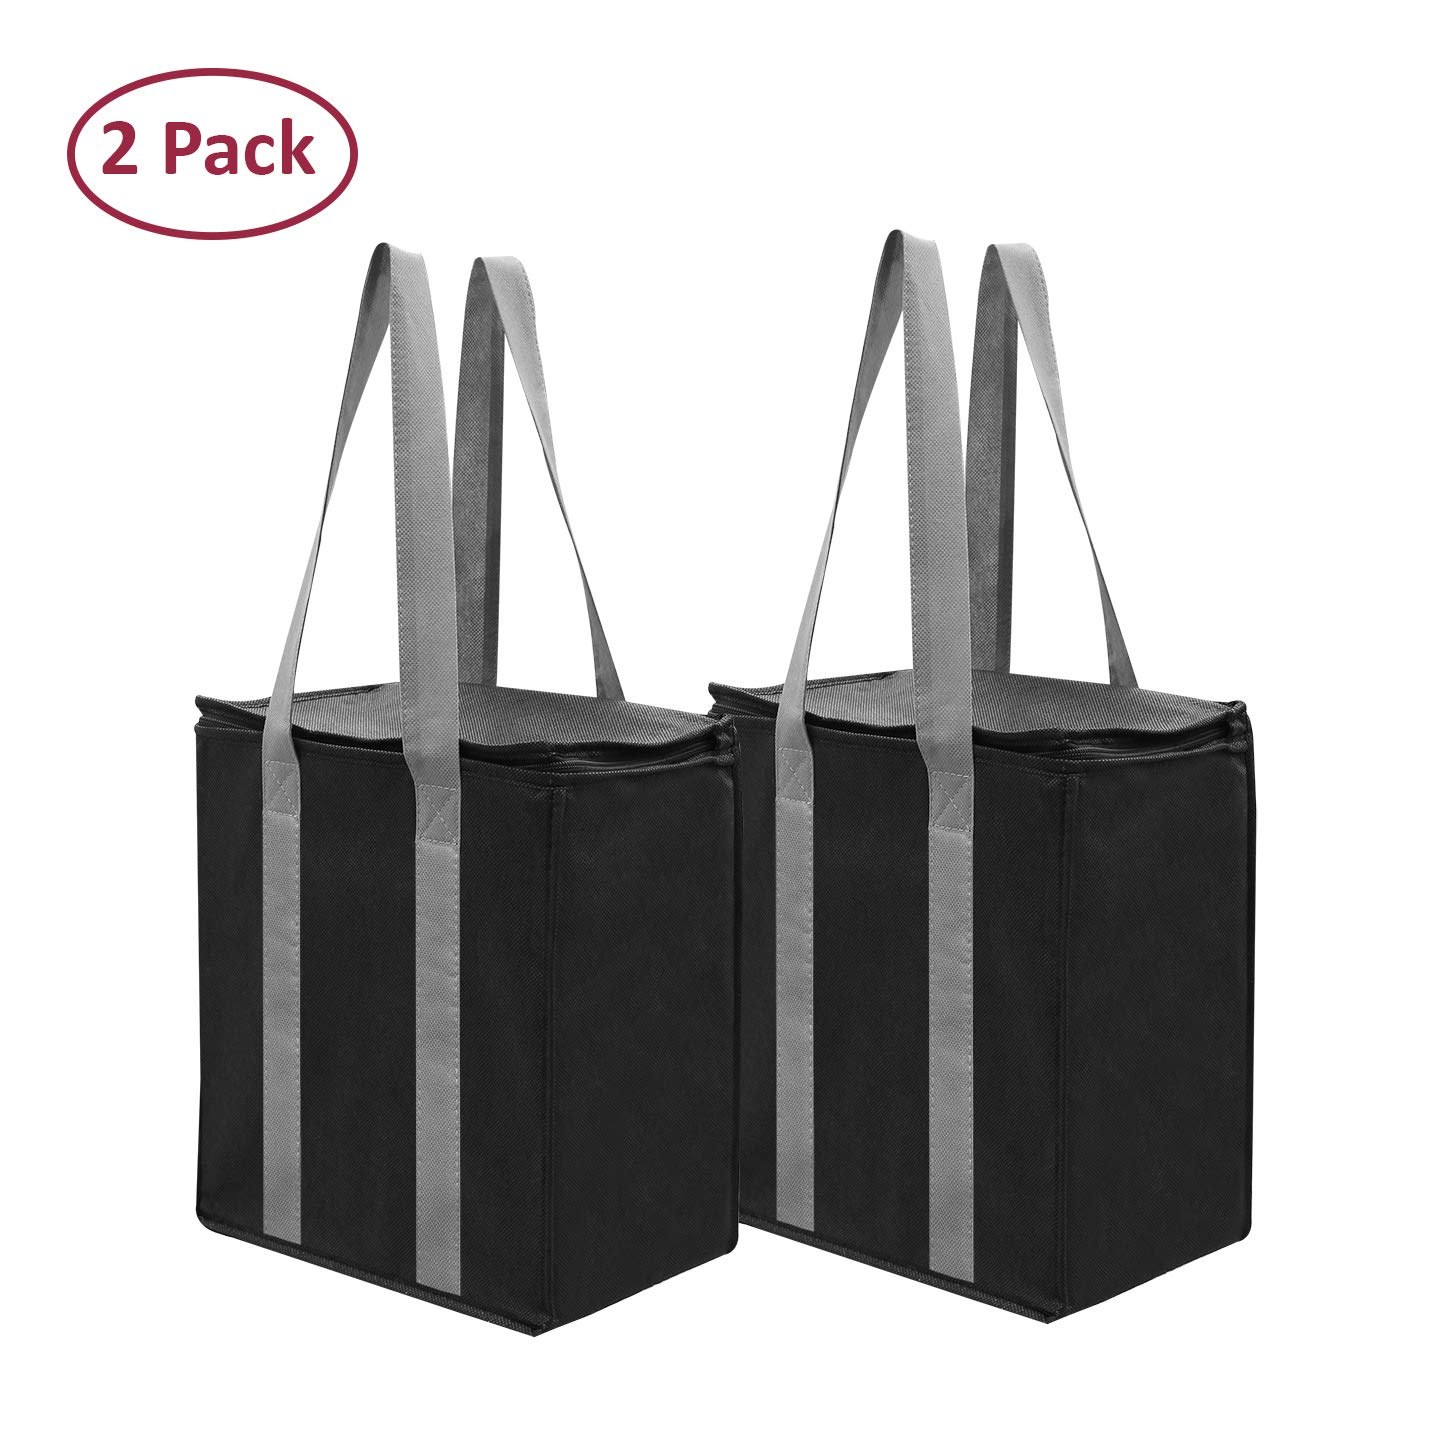 Insulated Reusable Grocery Bag Shopping Tote - Keeps Food Hot or Cold Large All Temperature Thermal Cooler Zipper Closure Lid Food Delivery and Catering (Black) by EarthWise